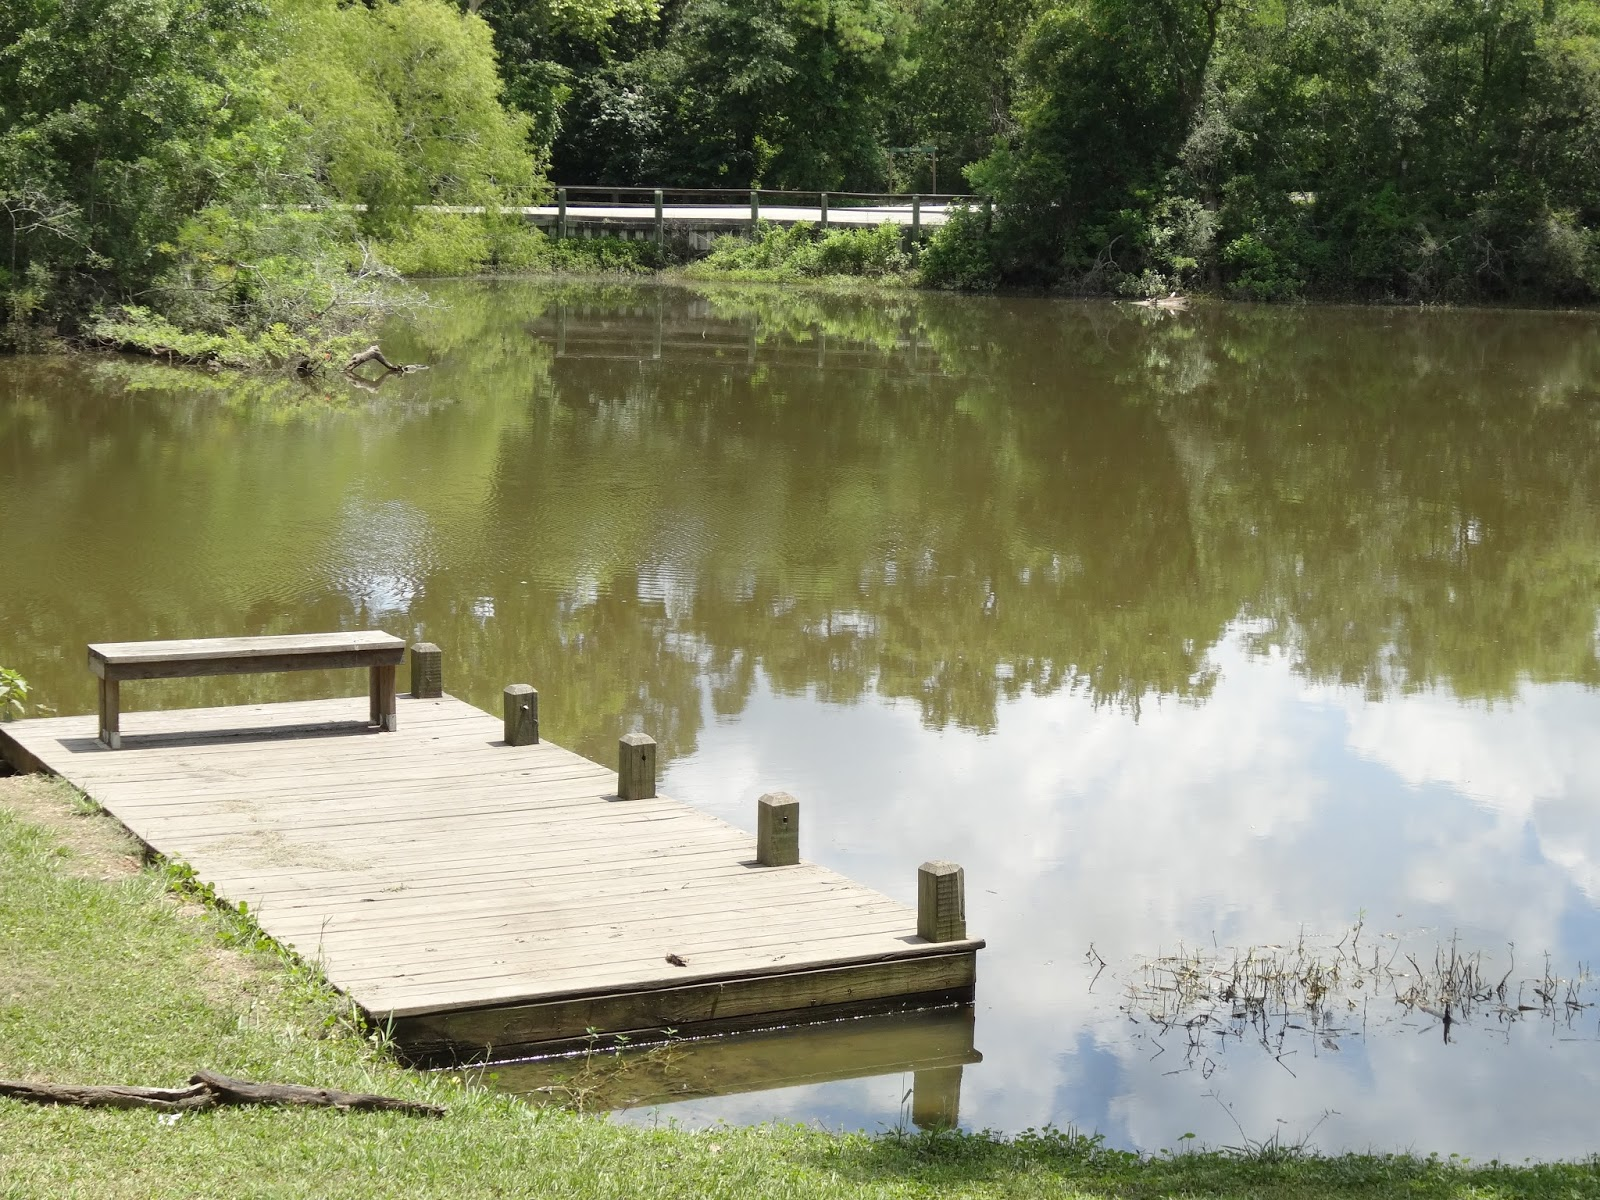 Where To Fish In Houston??: # 138 Camp Mohawk